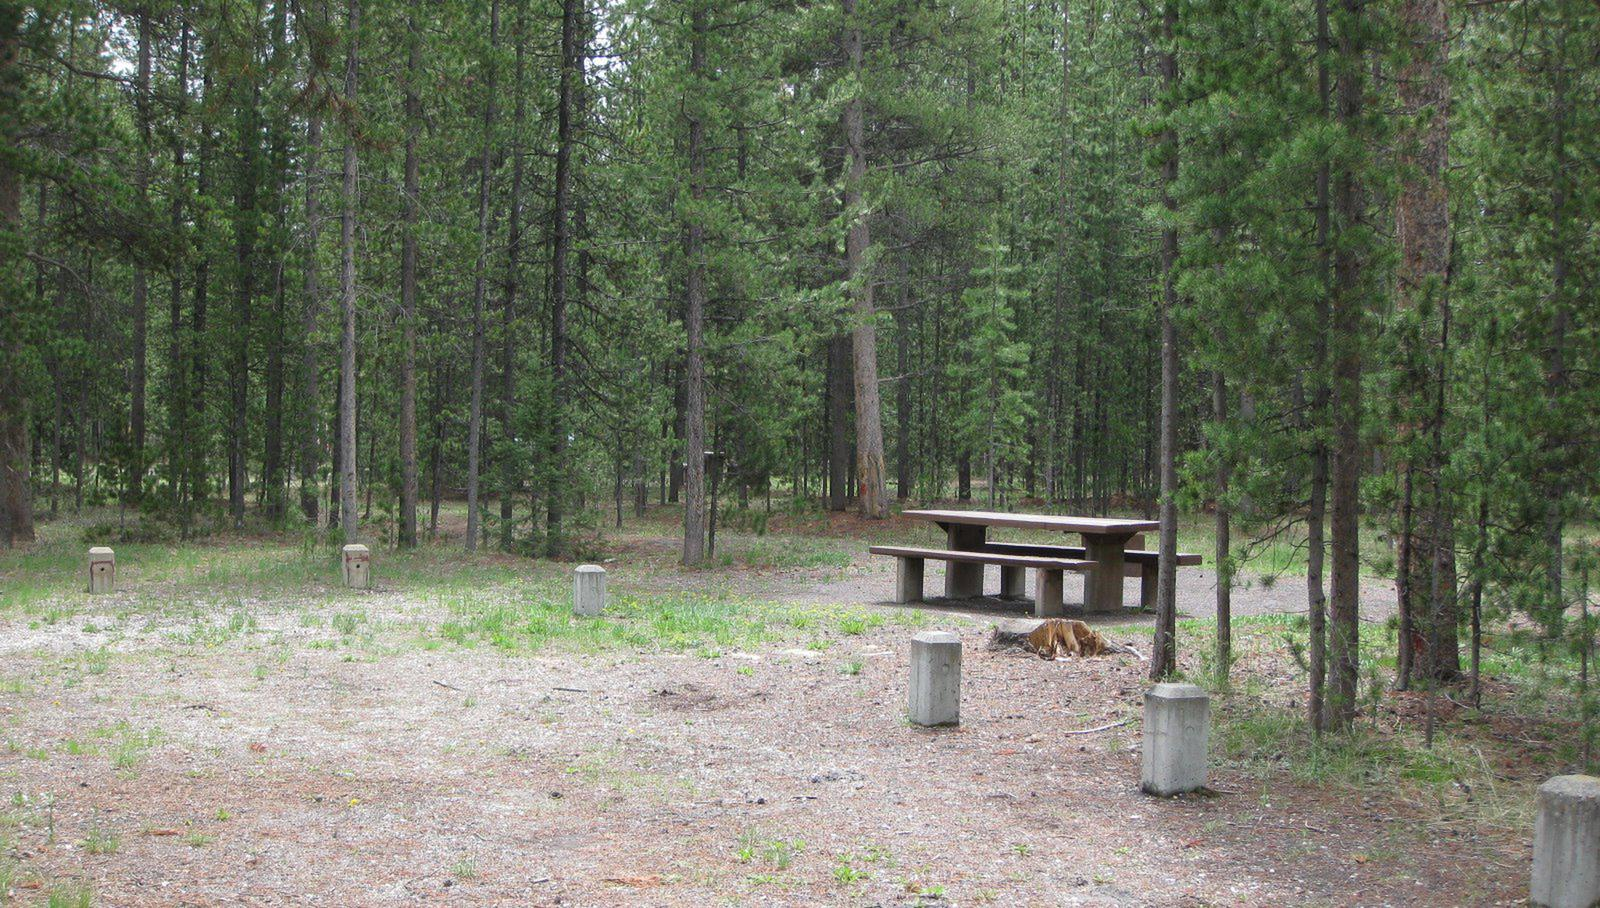 Site A18, surrounded by pine trees, picnic table & fire ringSite A18